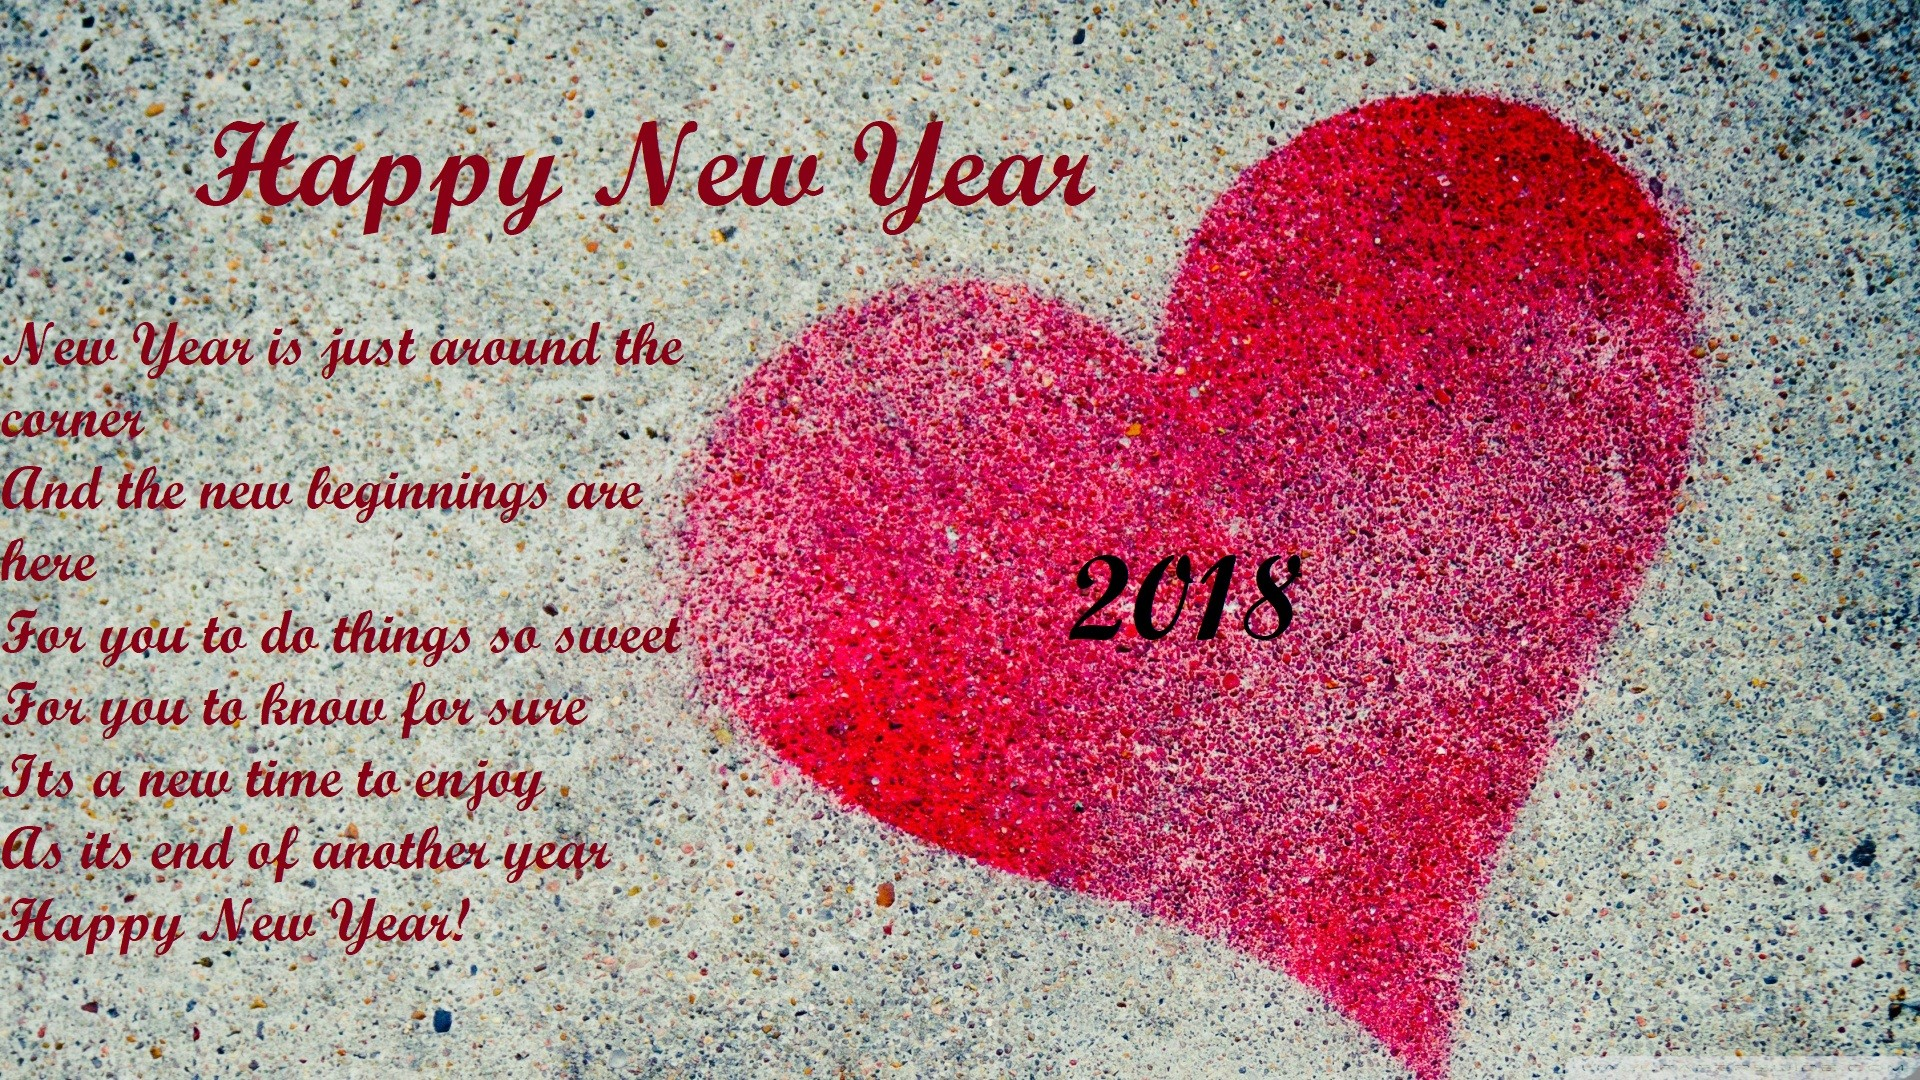 New year greetings wallpapers 2018 76 background pictures 1920x1080 happy new year greetings in punjabi m4hsunfo